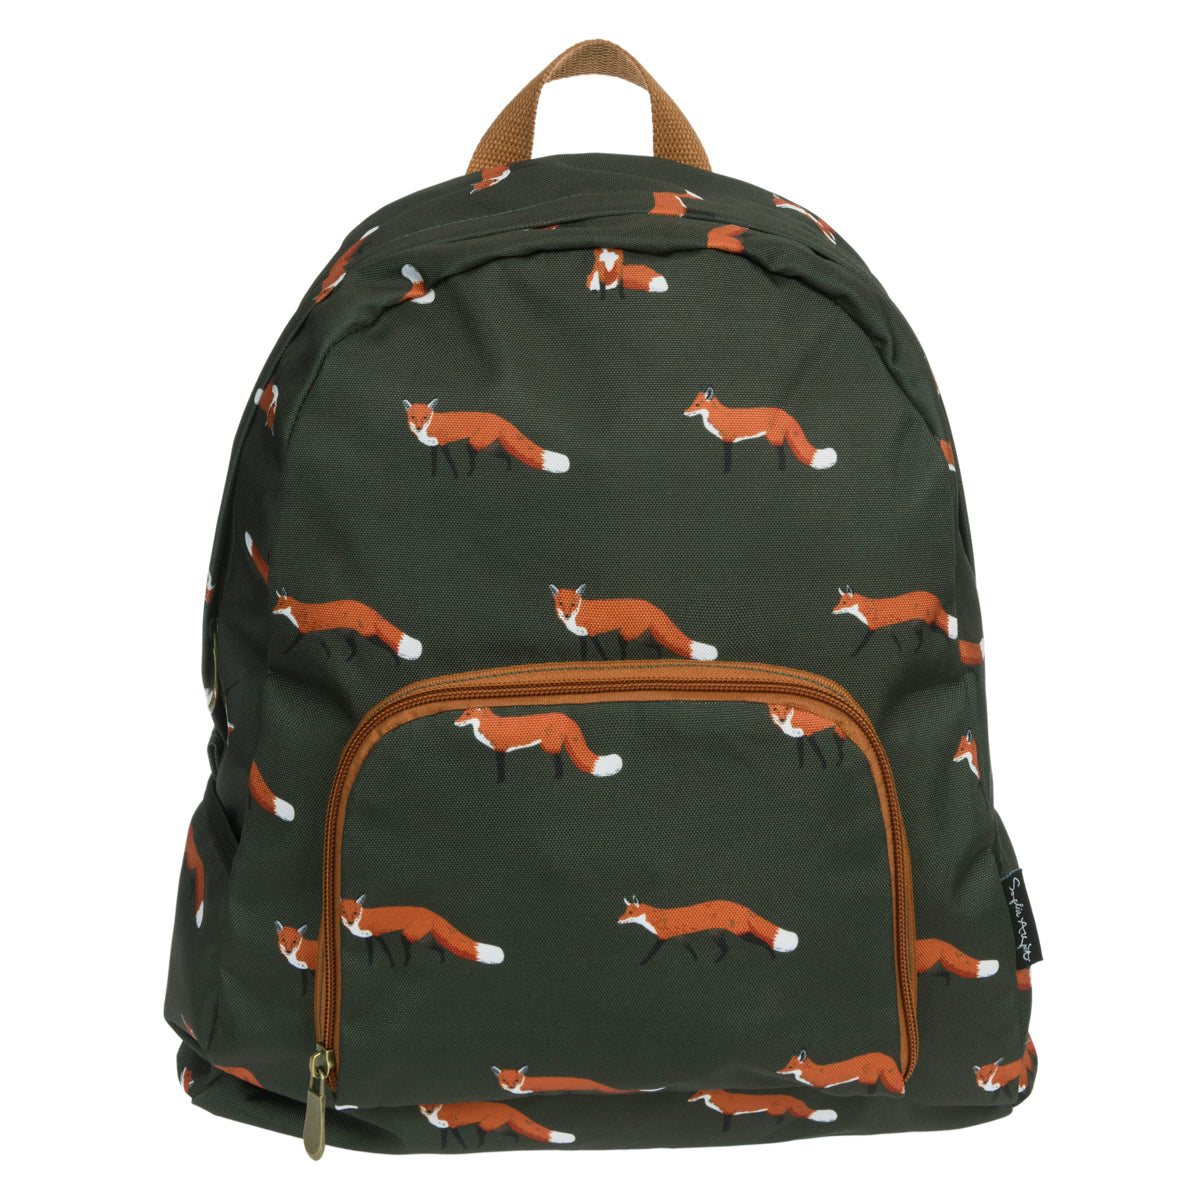 Foxes Folding Rucksack